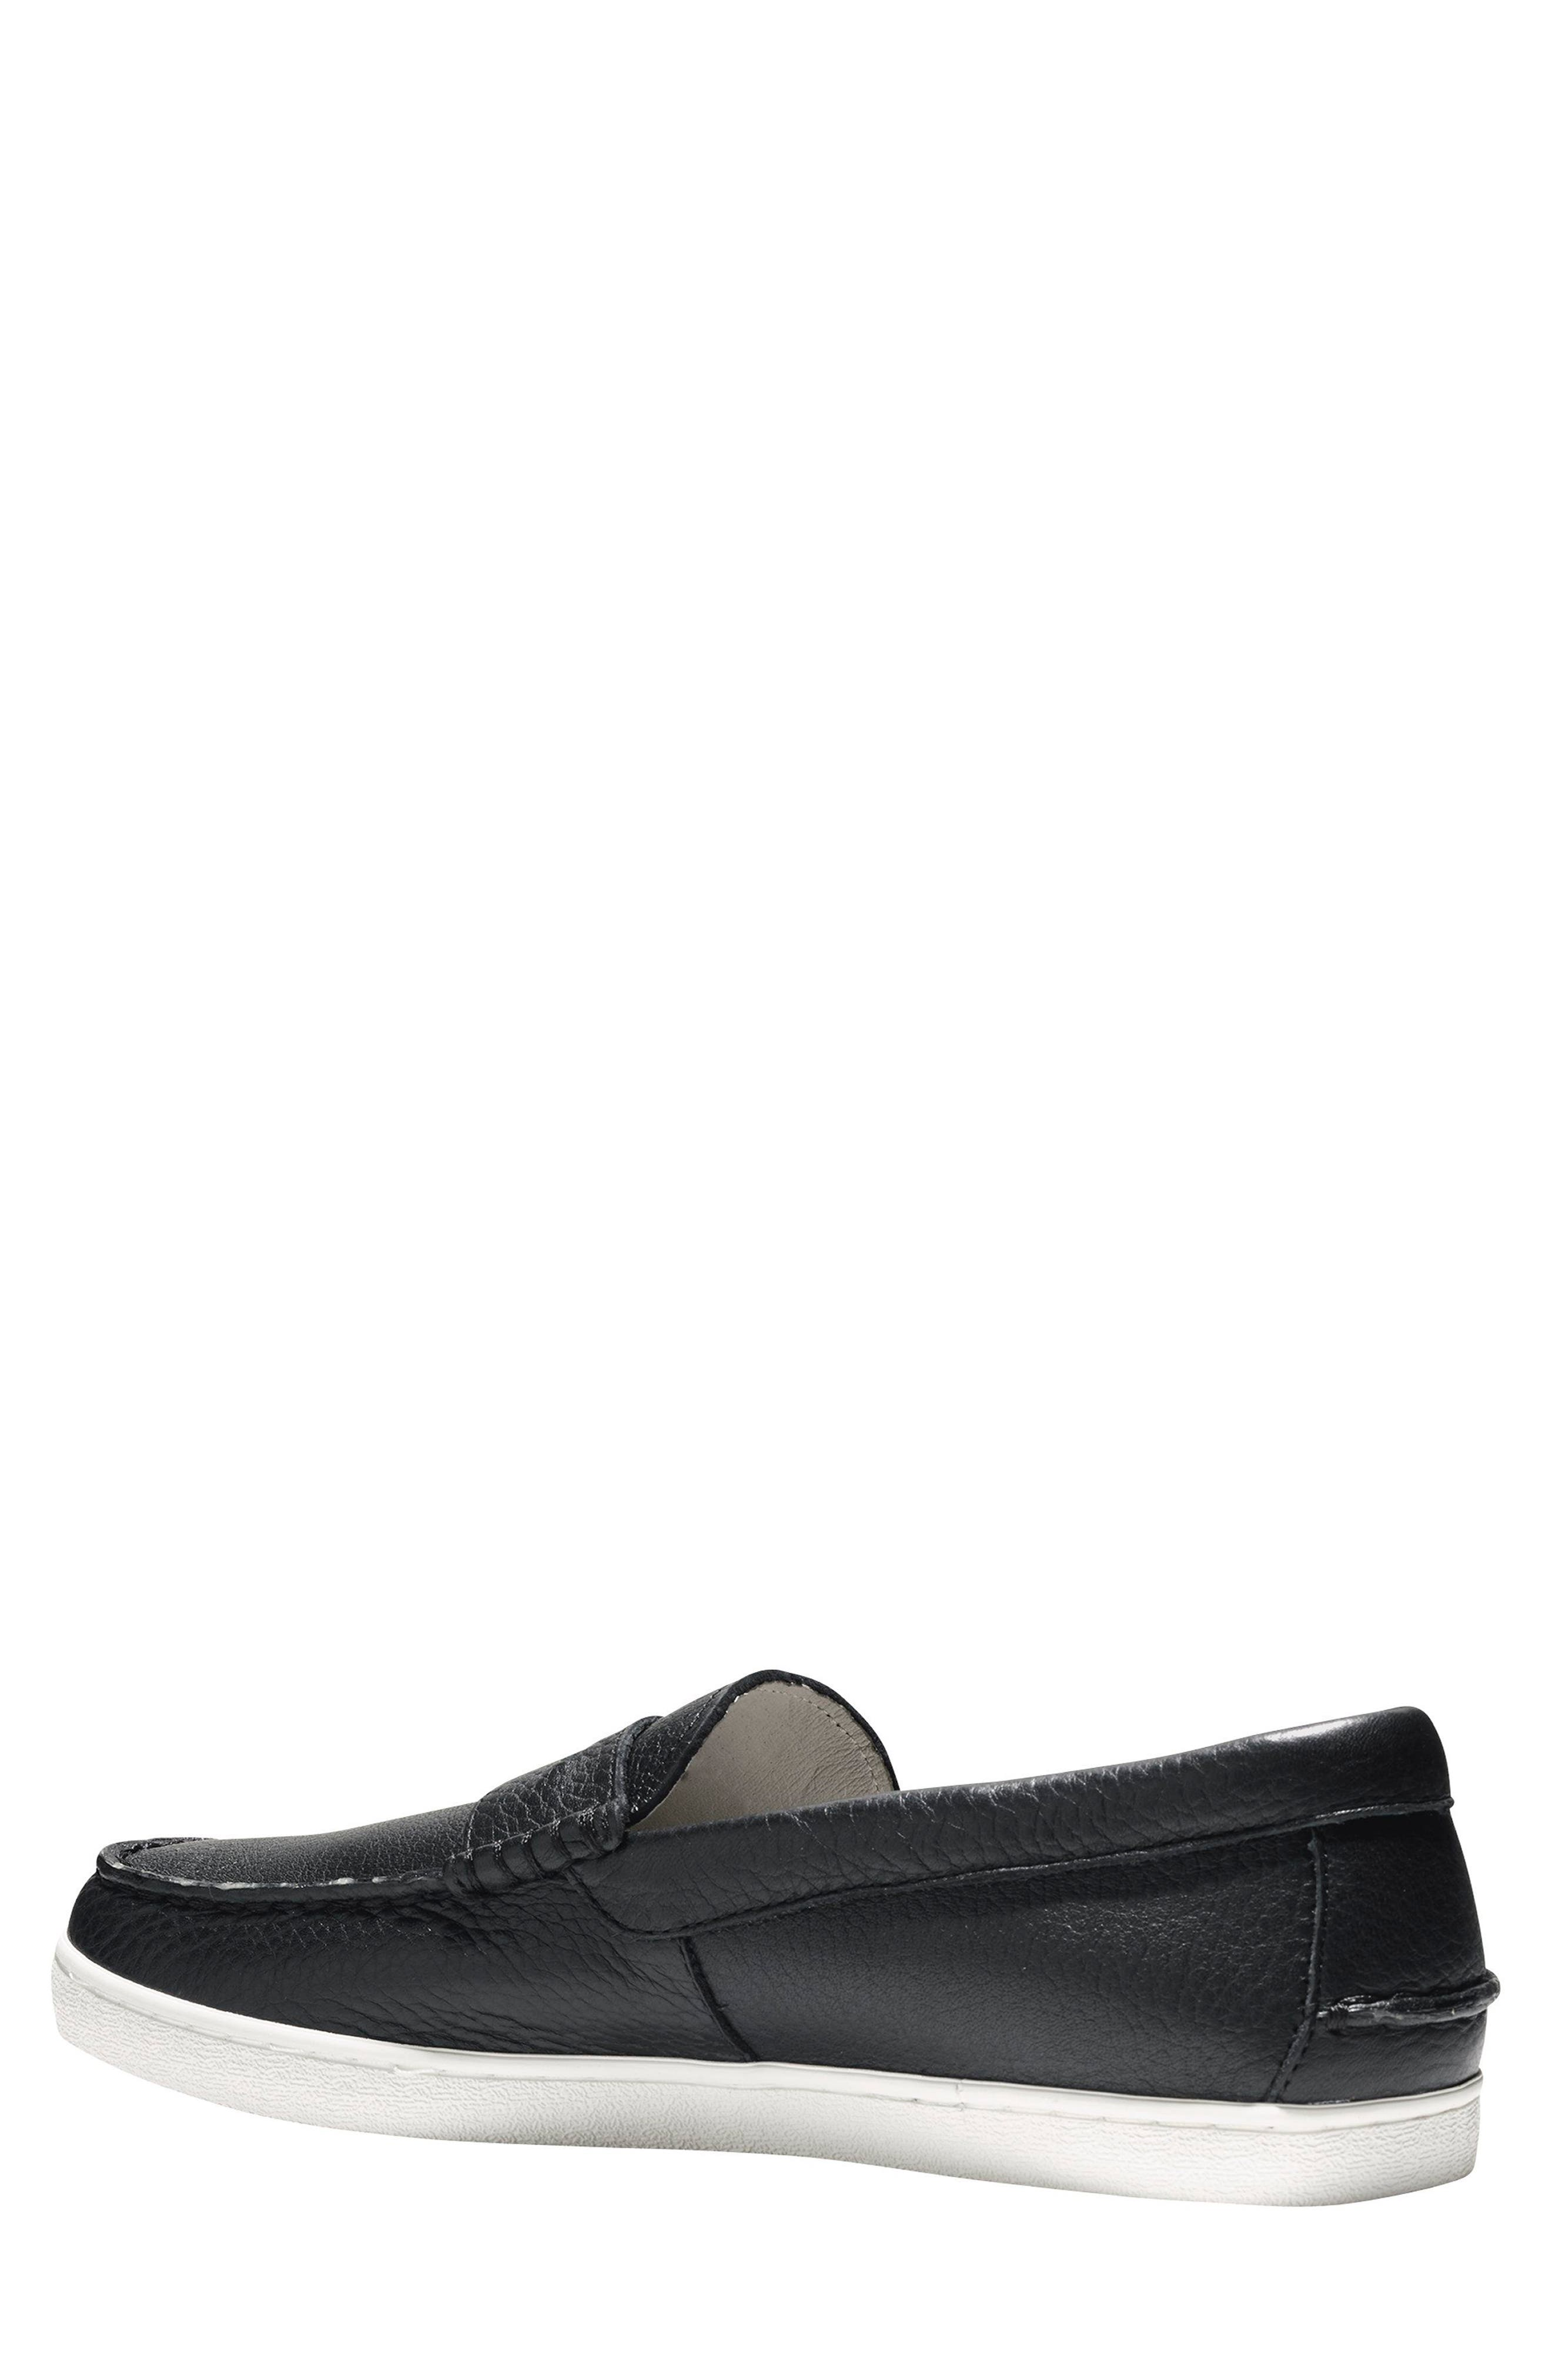 'Pinch' Penny Loafer,                             Alternate thumbnail 2, color,                             Black Leather/ White